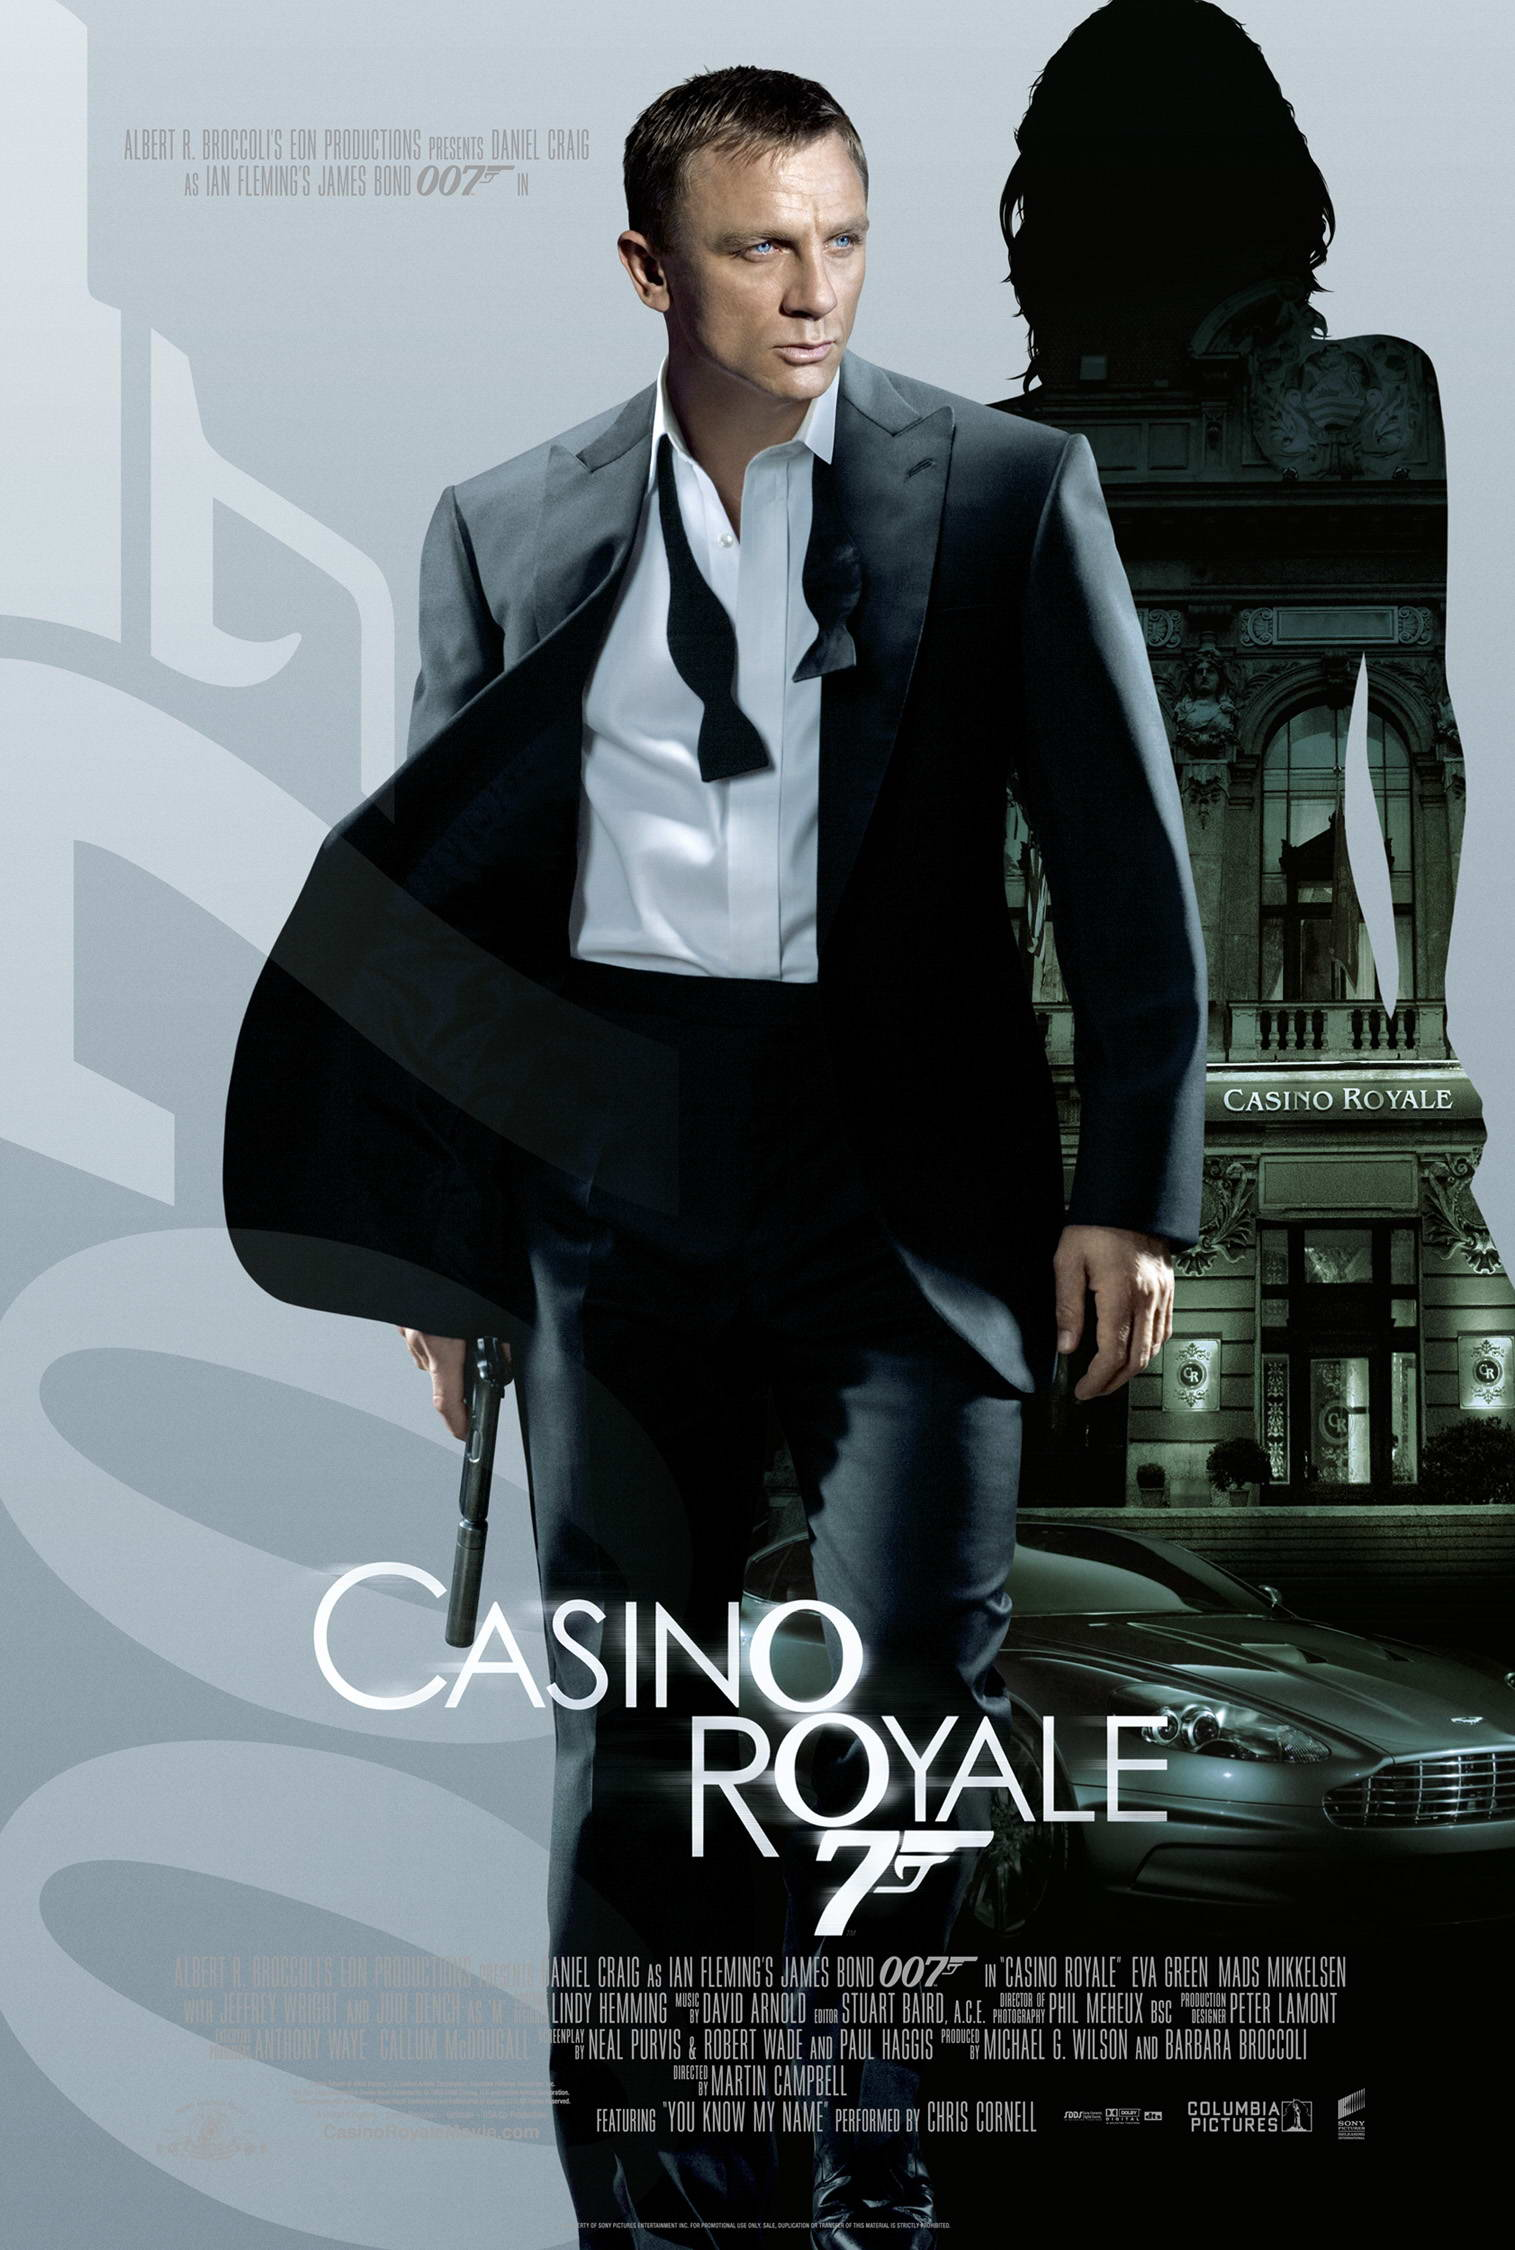 James bond casino royale movie online gambling casino to nowhereny